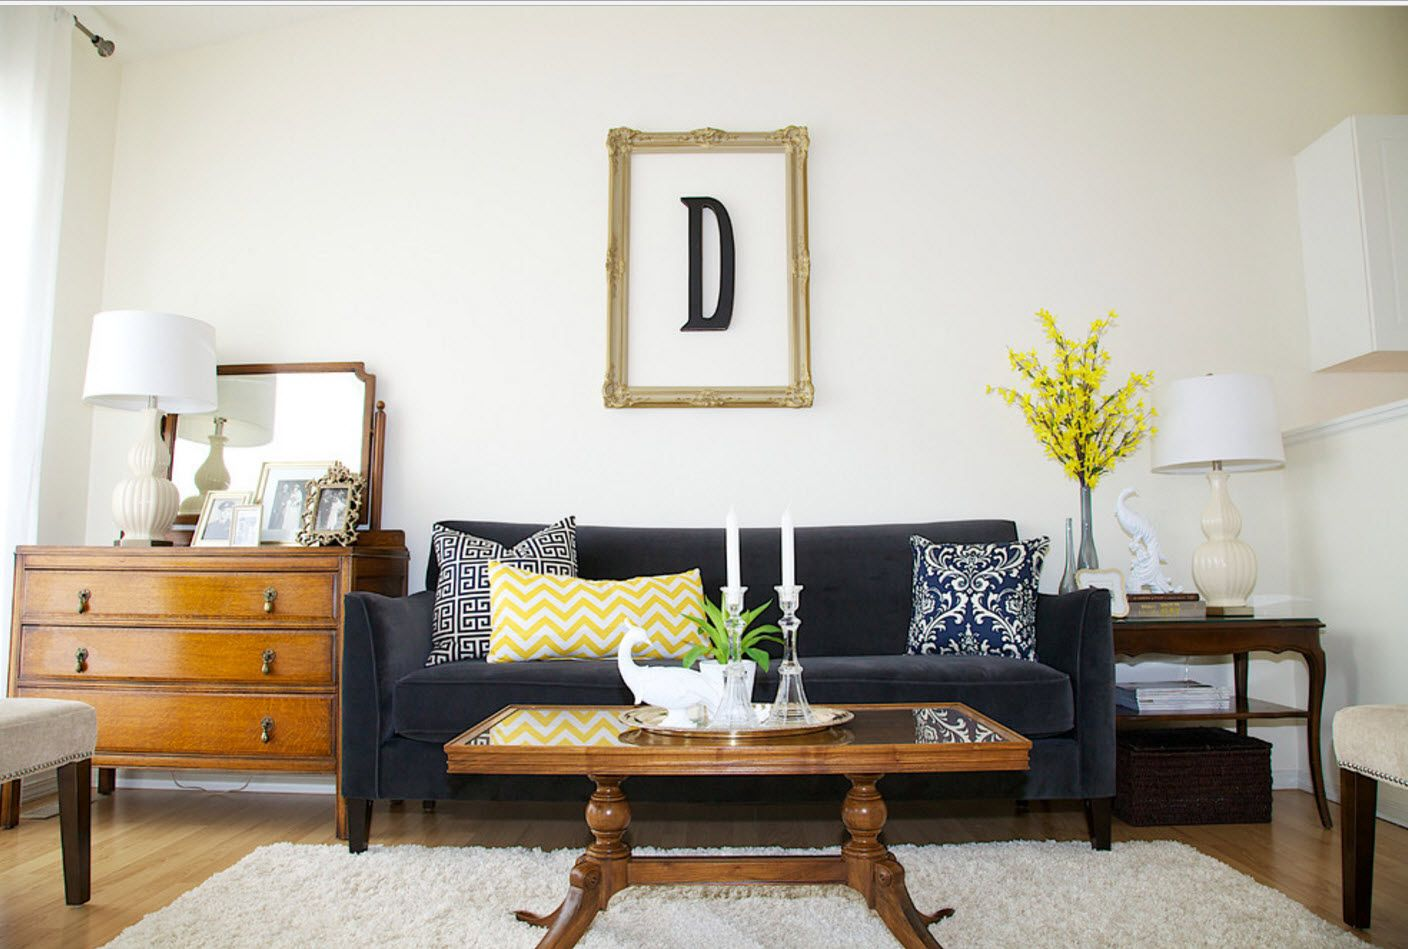 Living room with the letter picture design and classic setting